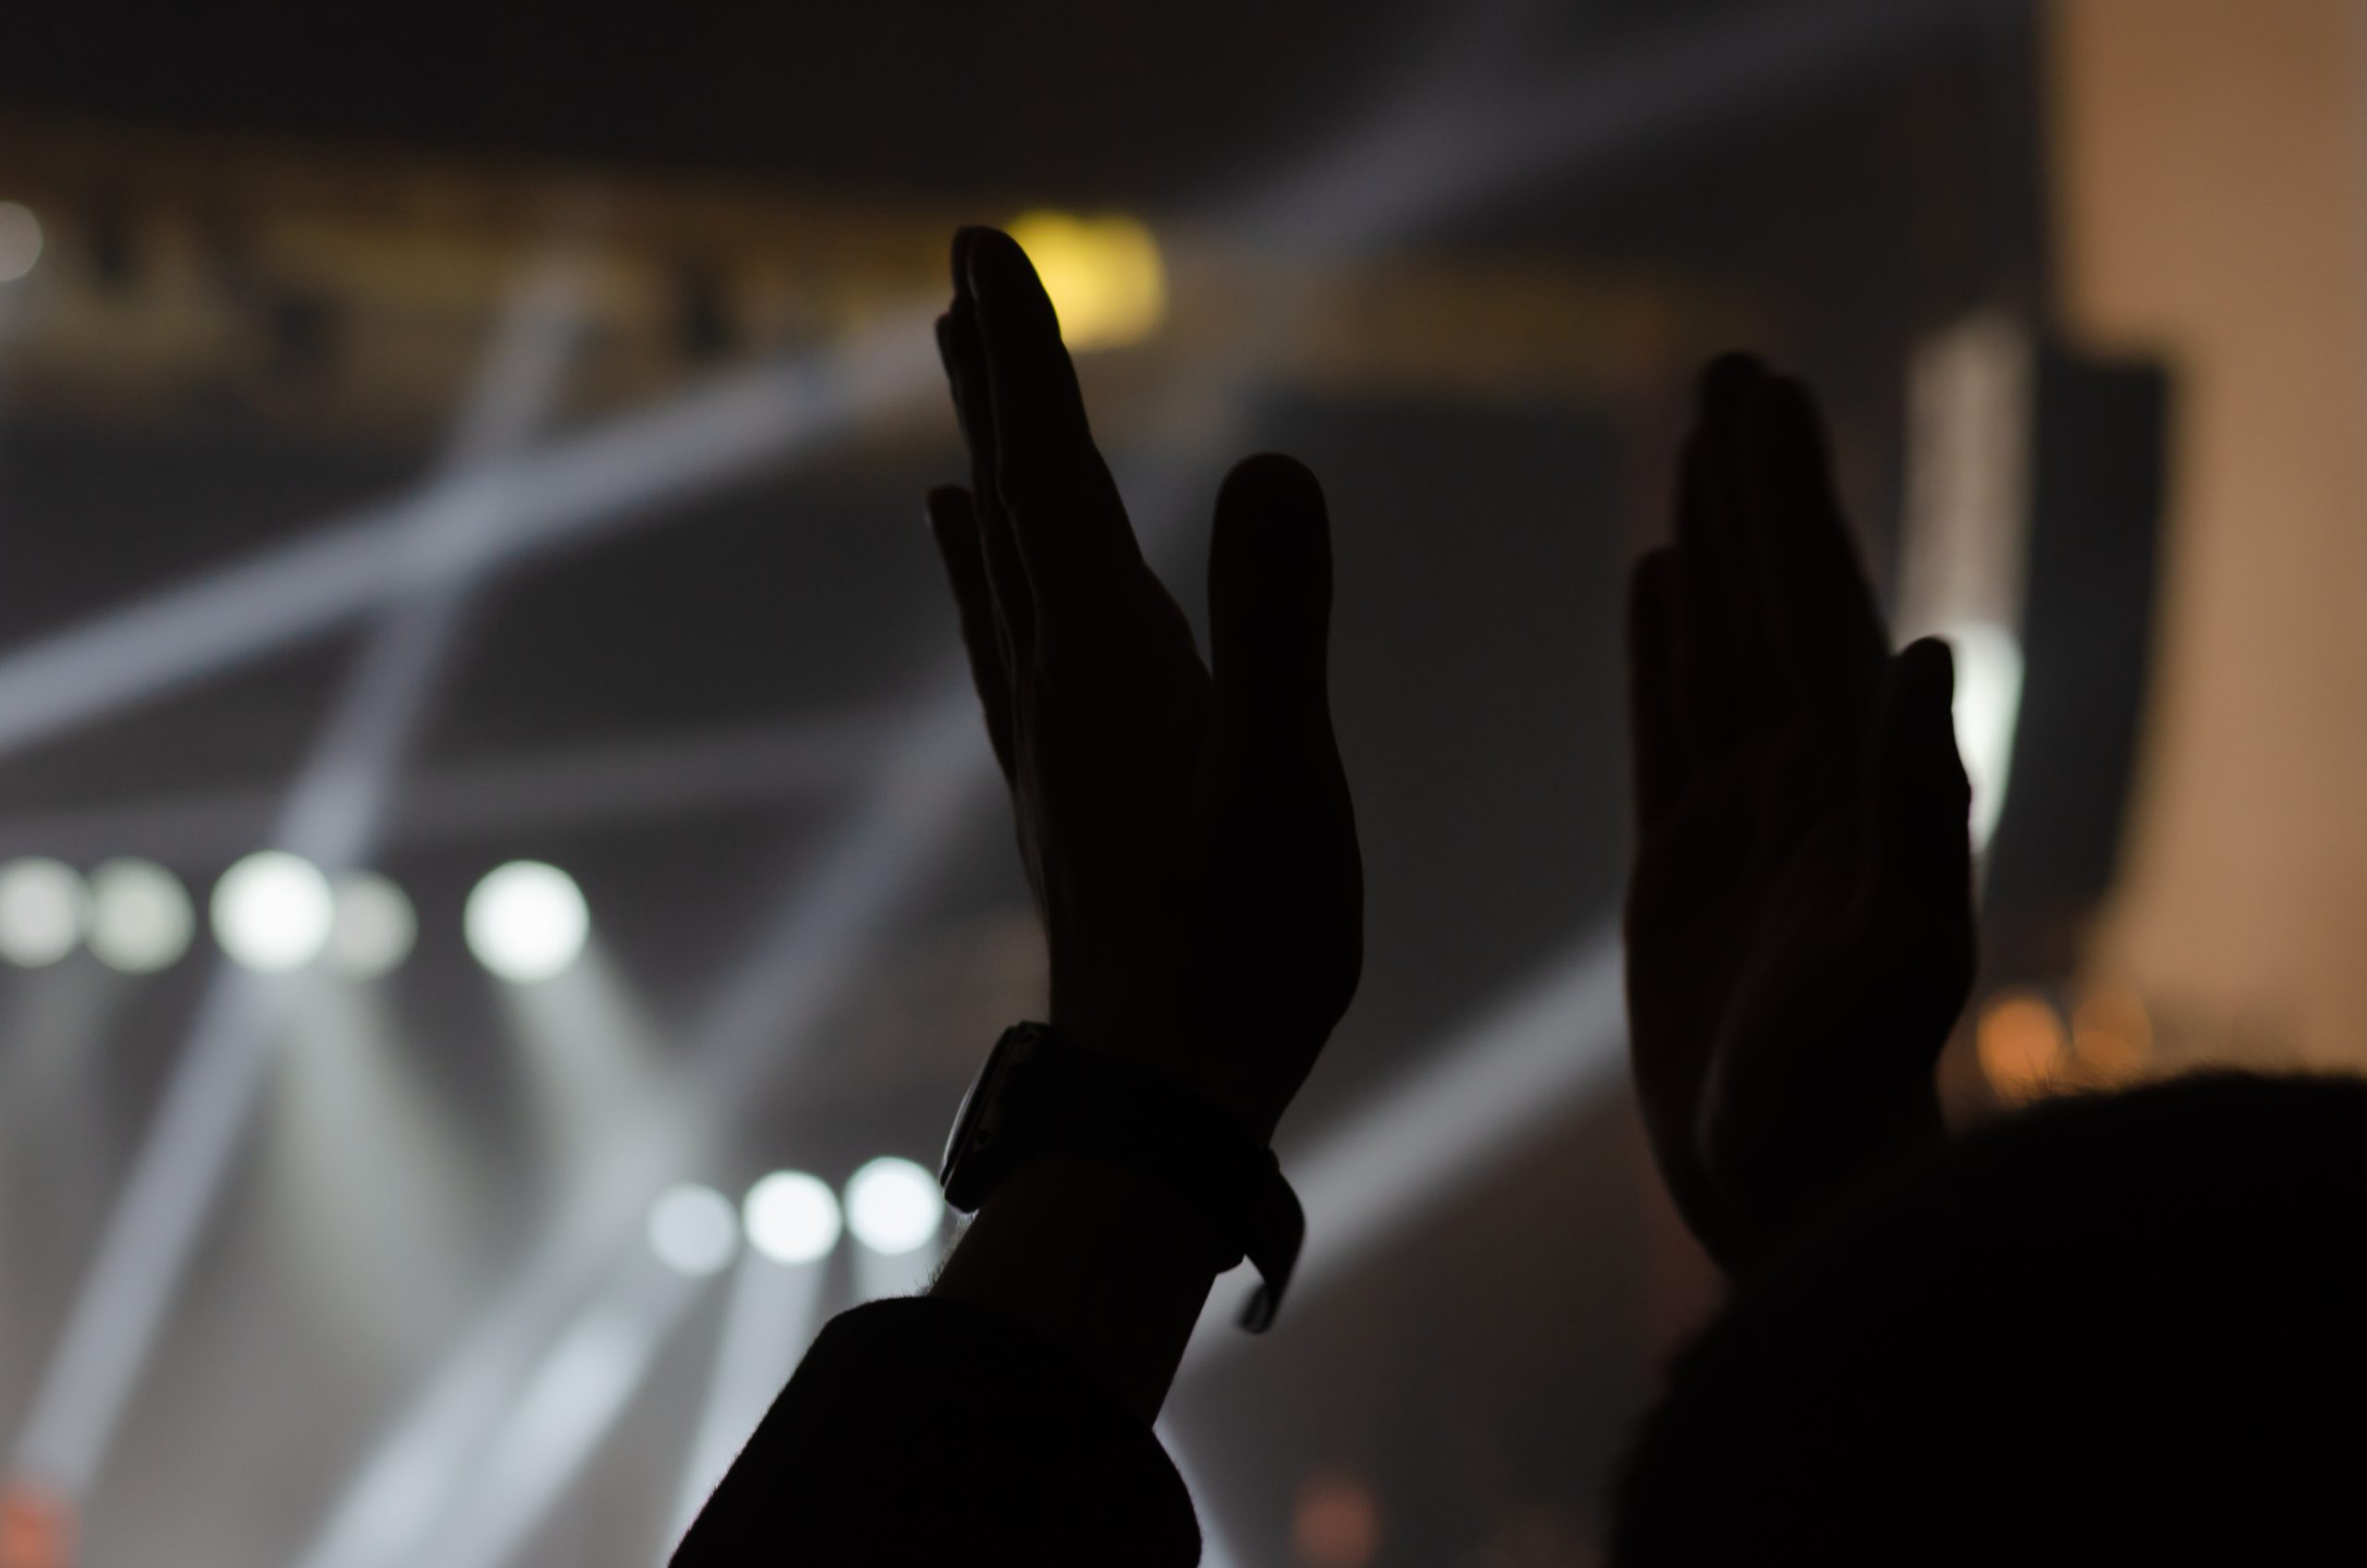 A Silhouette of Two Hands